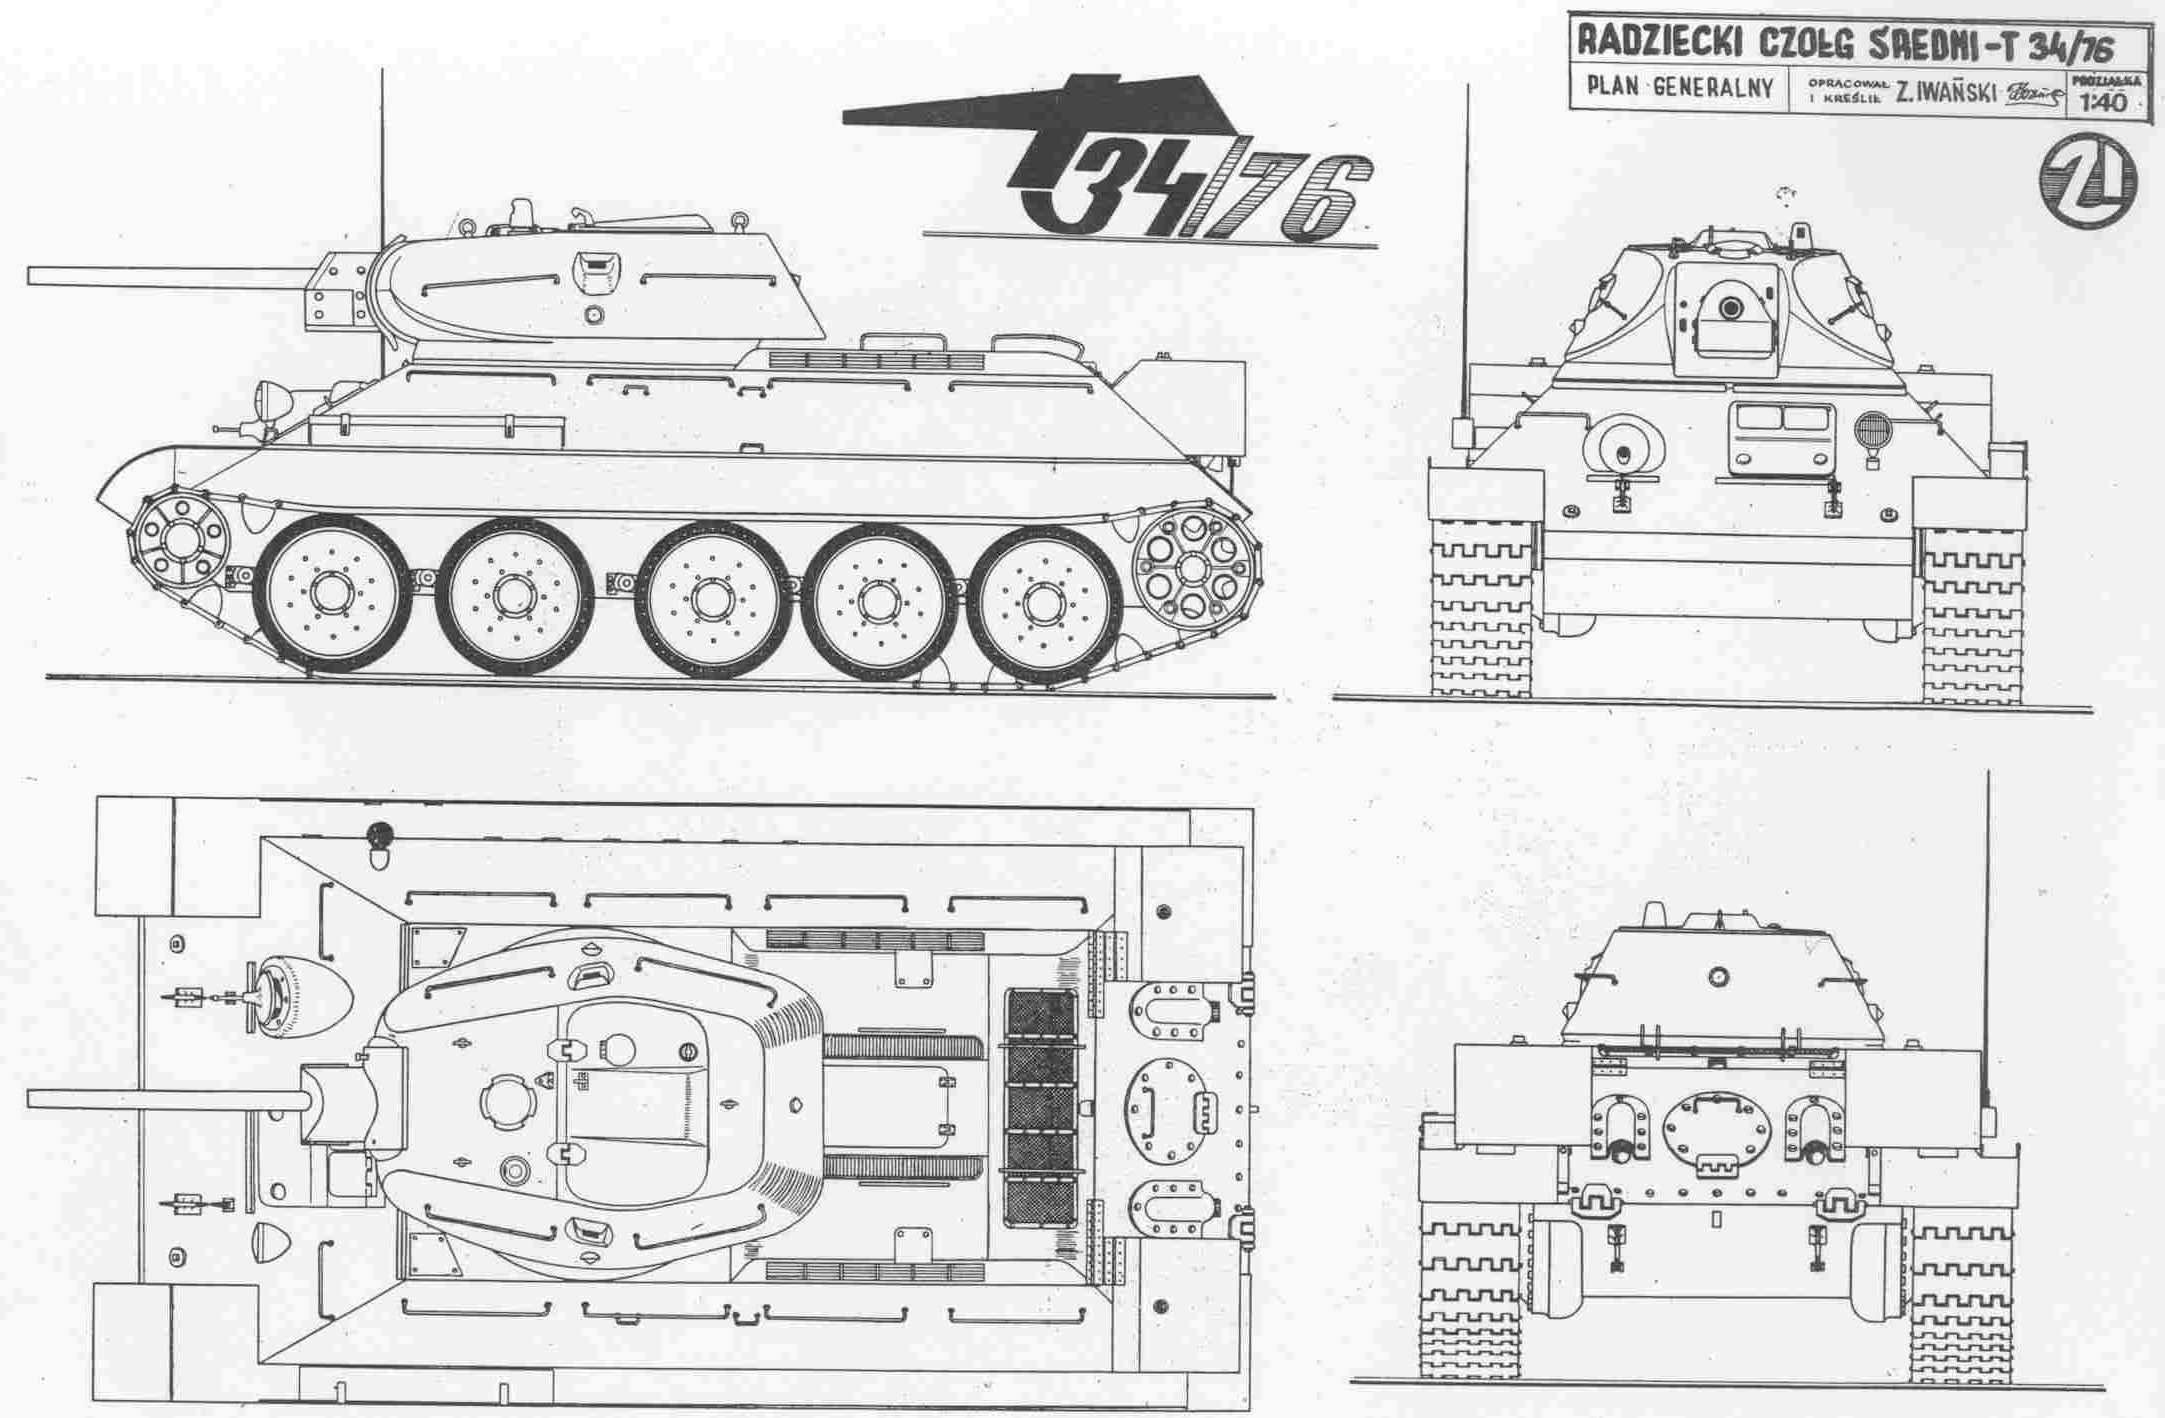 T 34 blueprint download free blueprint for 3d modeling for Free 3d blueprints